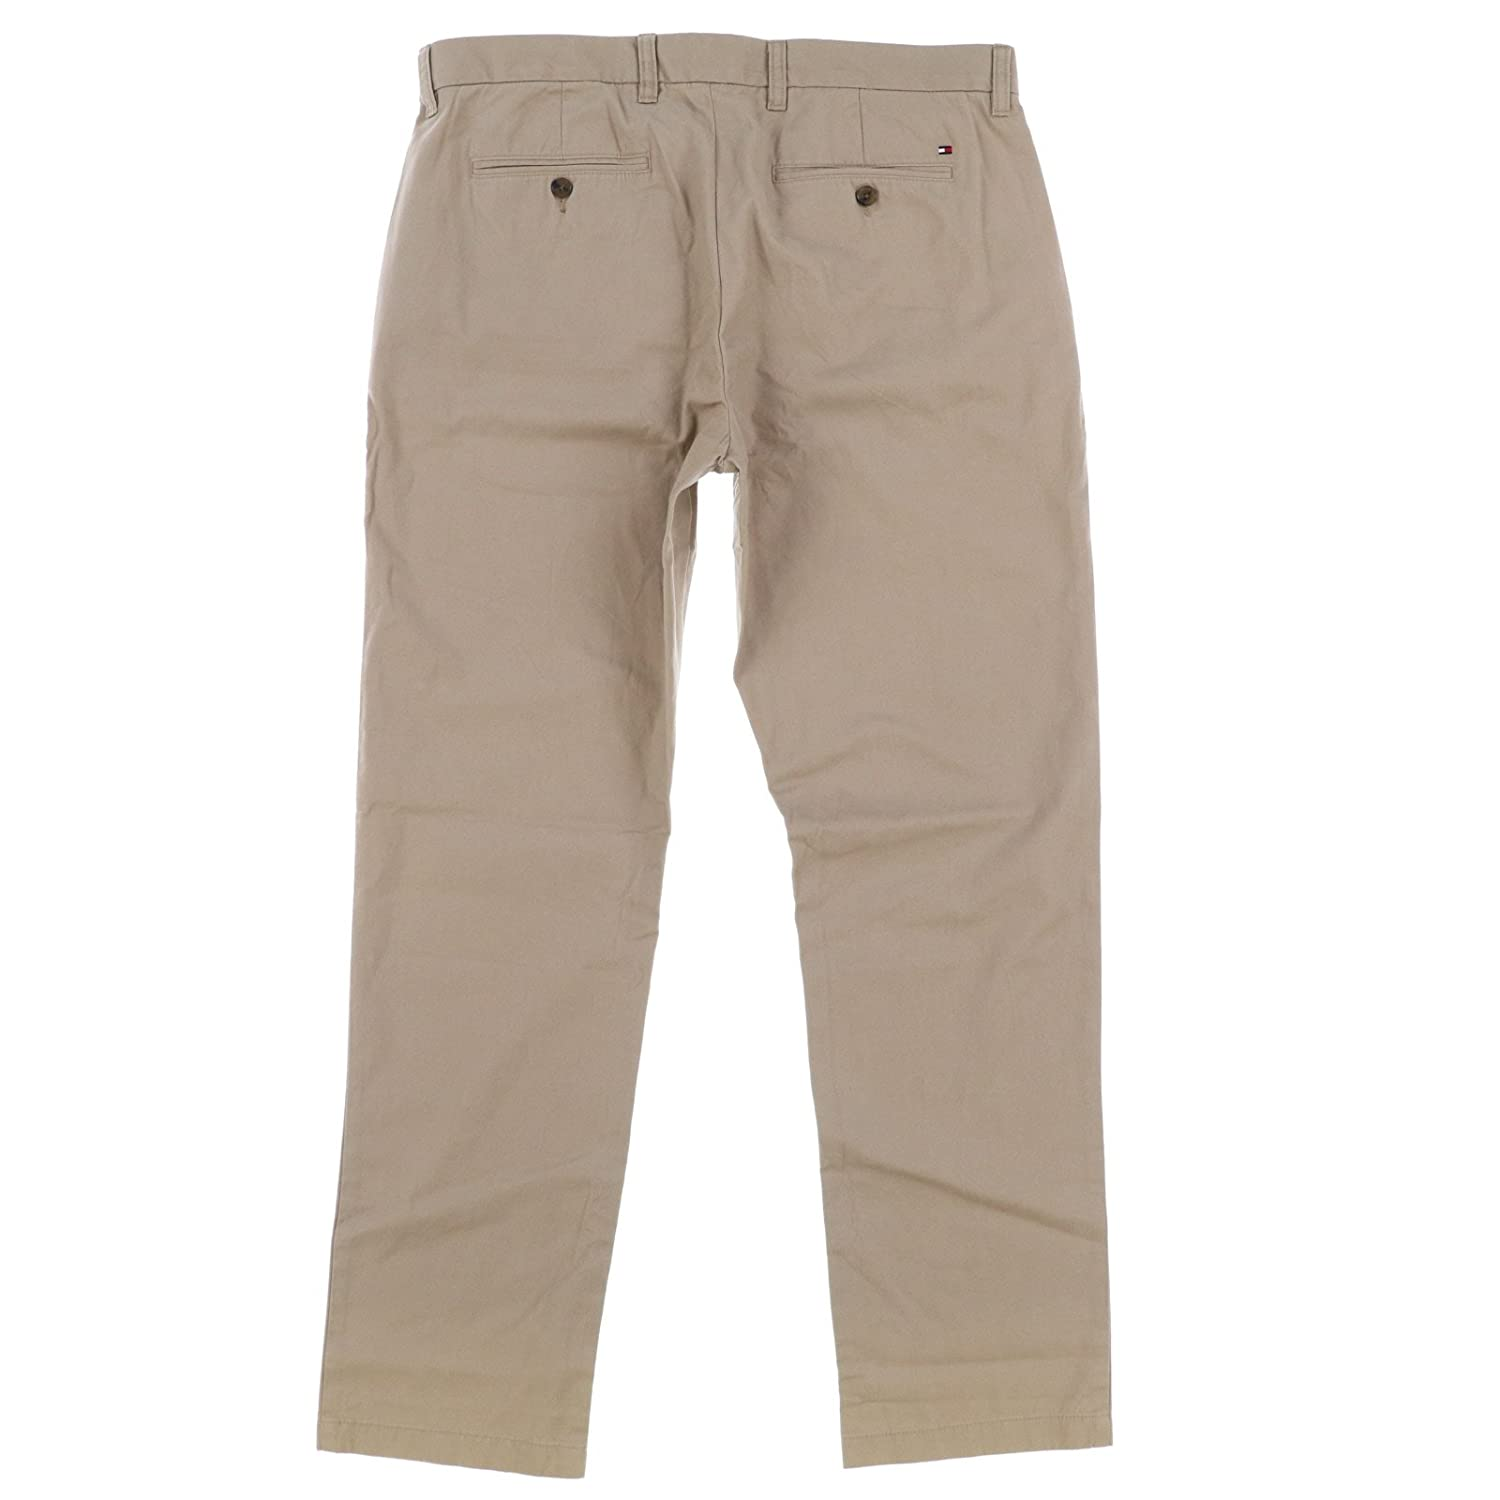 dd29defb Tommy Hilfiger Mens Custom Fit Chino Pants at Amazon Men's Clothing store: